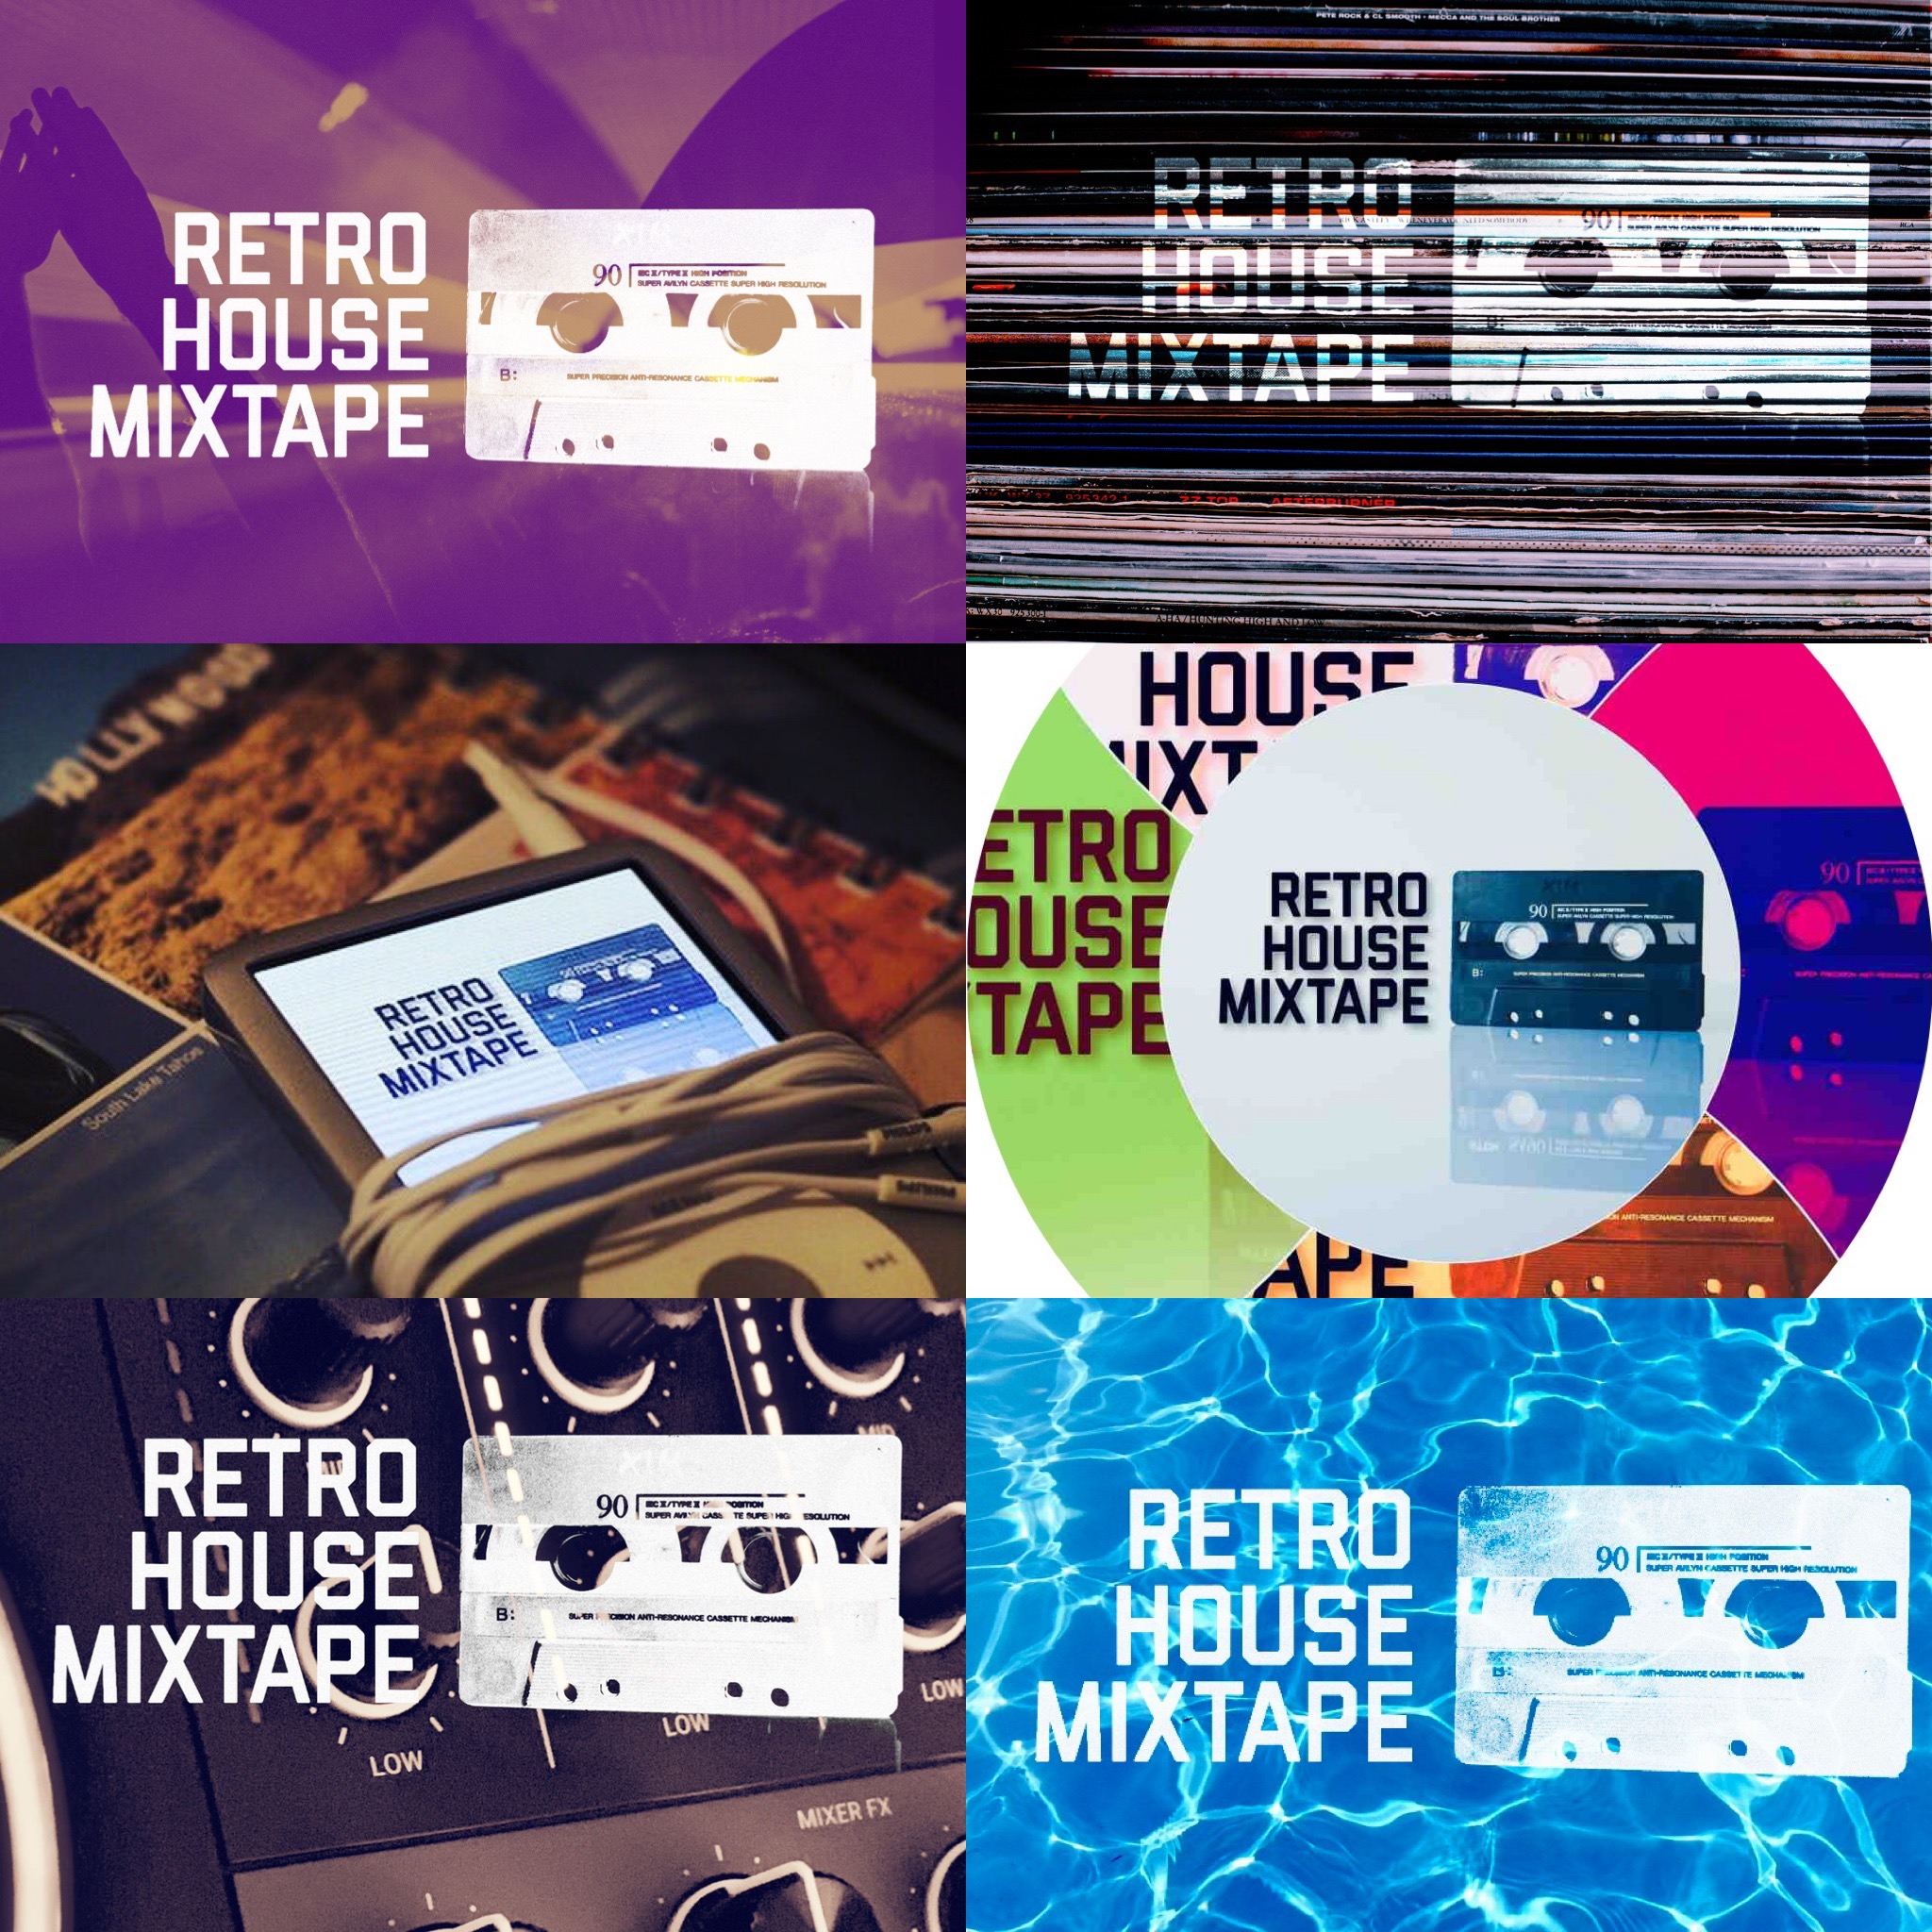 Most Listened Episodes - Retro House Mixtape